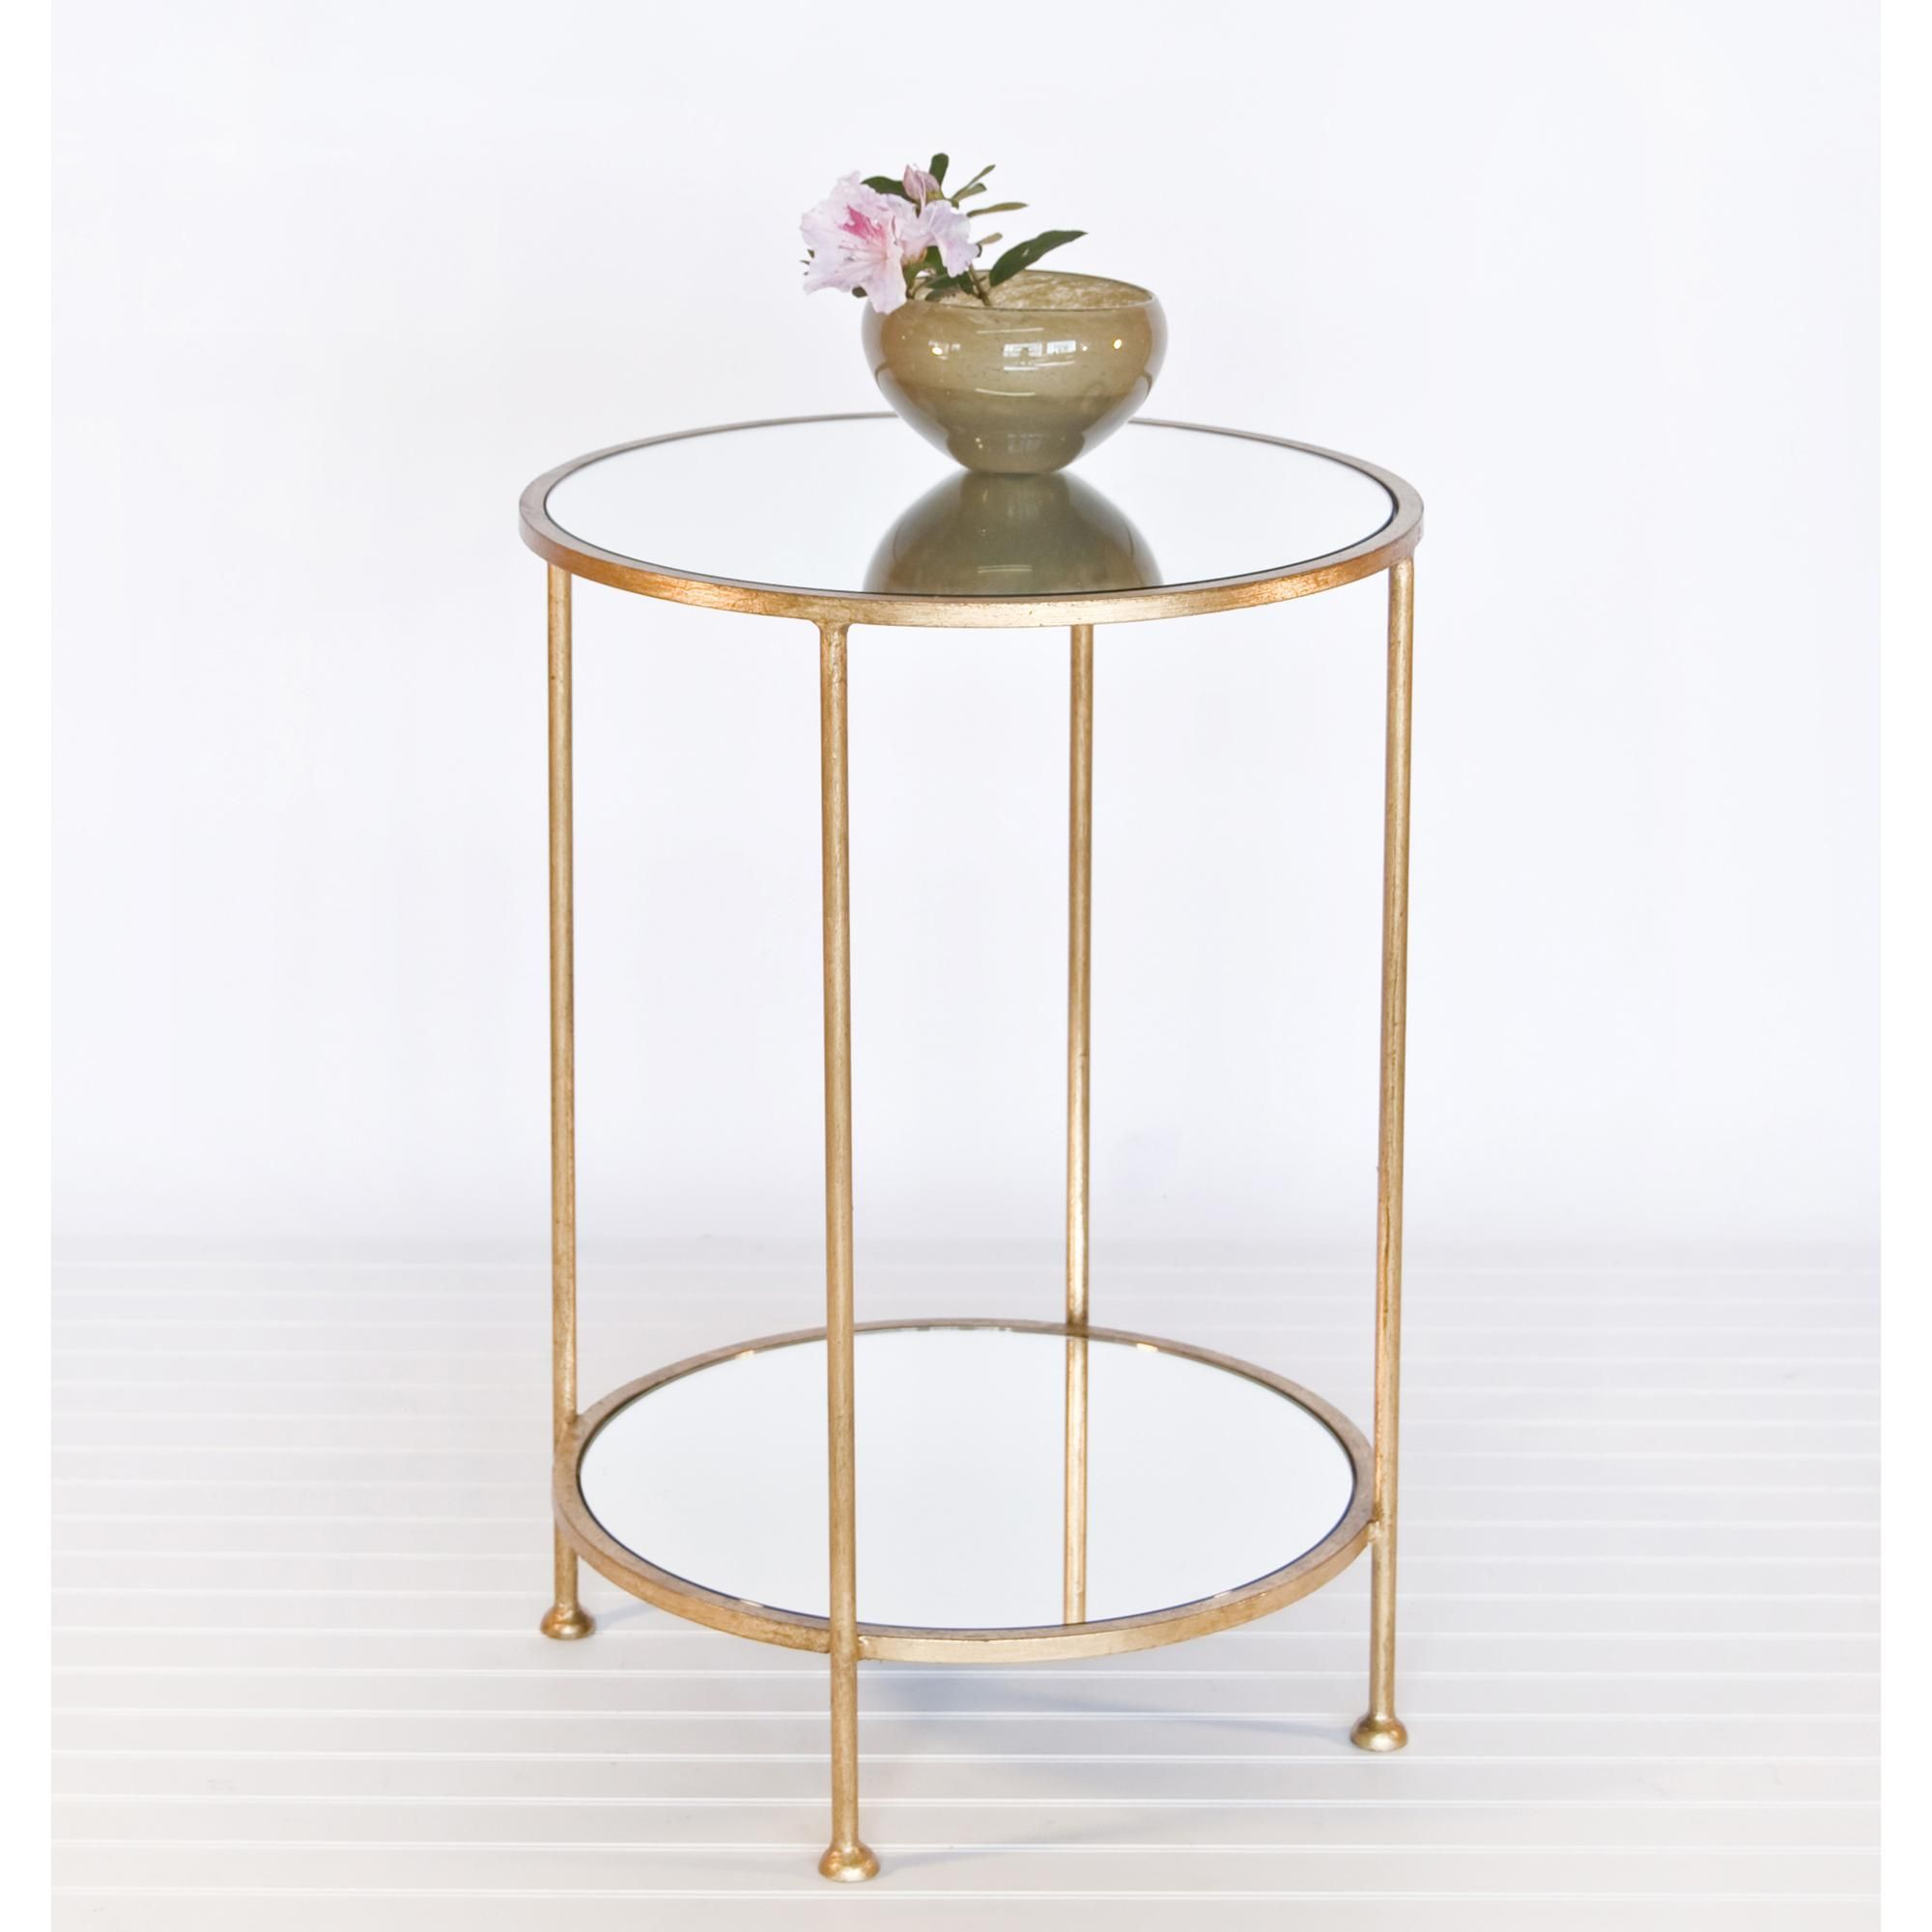 worlds away chico small tier gold leaf side table mirror top mirrored accent with very garden furniture tulsa cane outdoor charging station high end cocktail tables wood cube mid